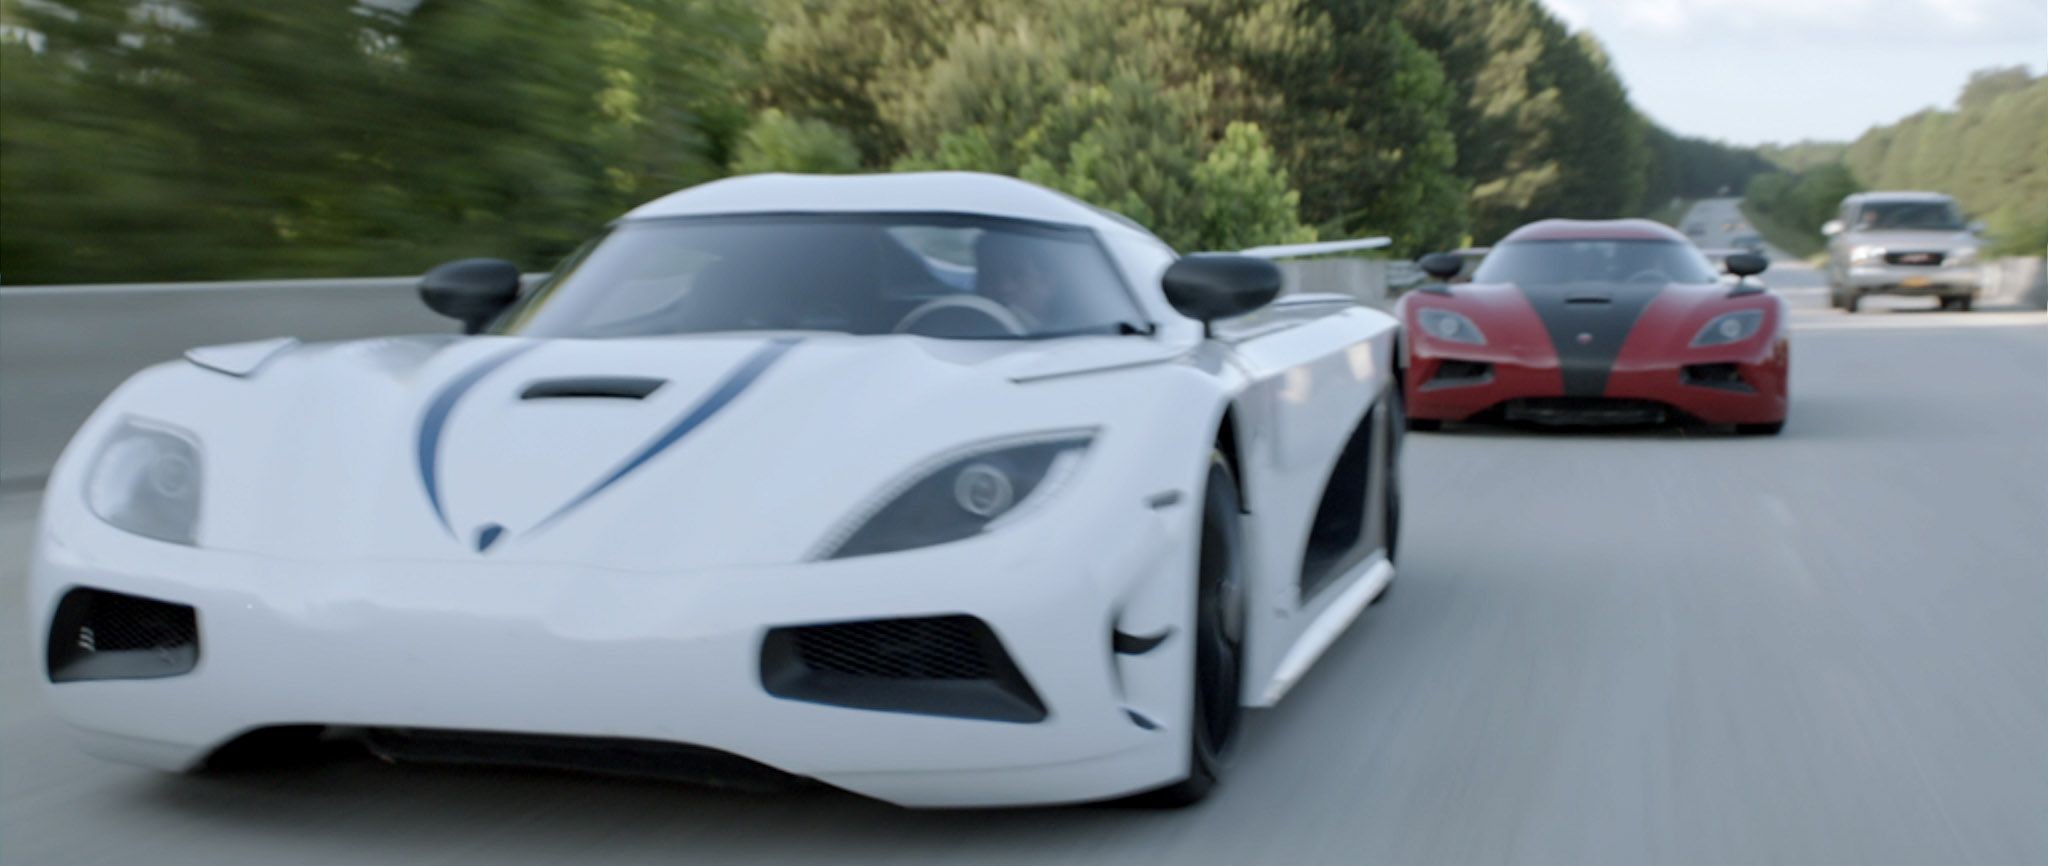 Need For Speed Fast Cars Need For Speed Cars Movie Koenigsegg